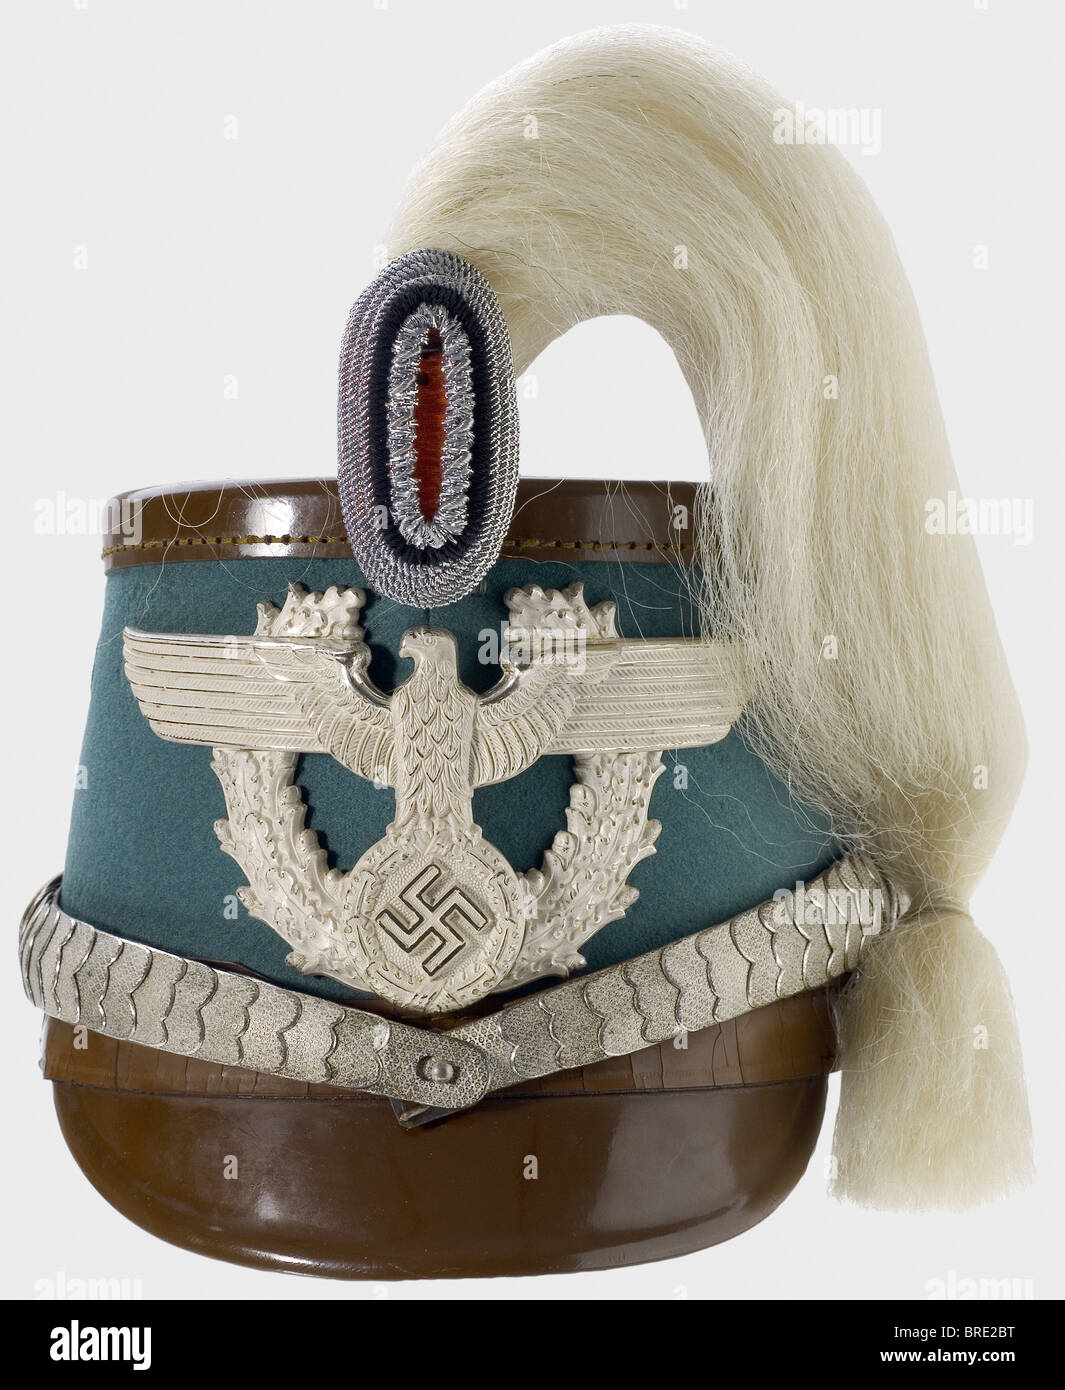 A gendarmerie officer's shako, complete with parade plume and protective cover Fiberglass skull with police - Stock Image